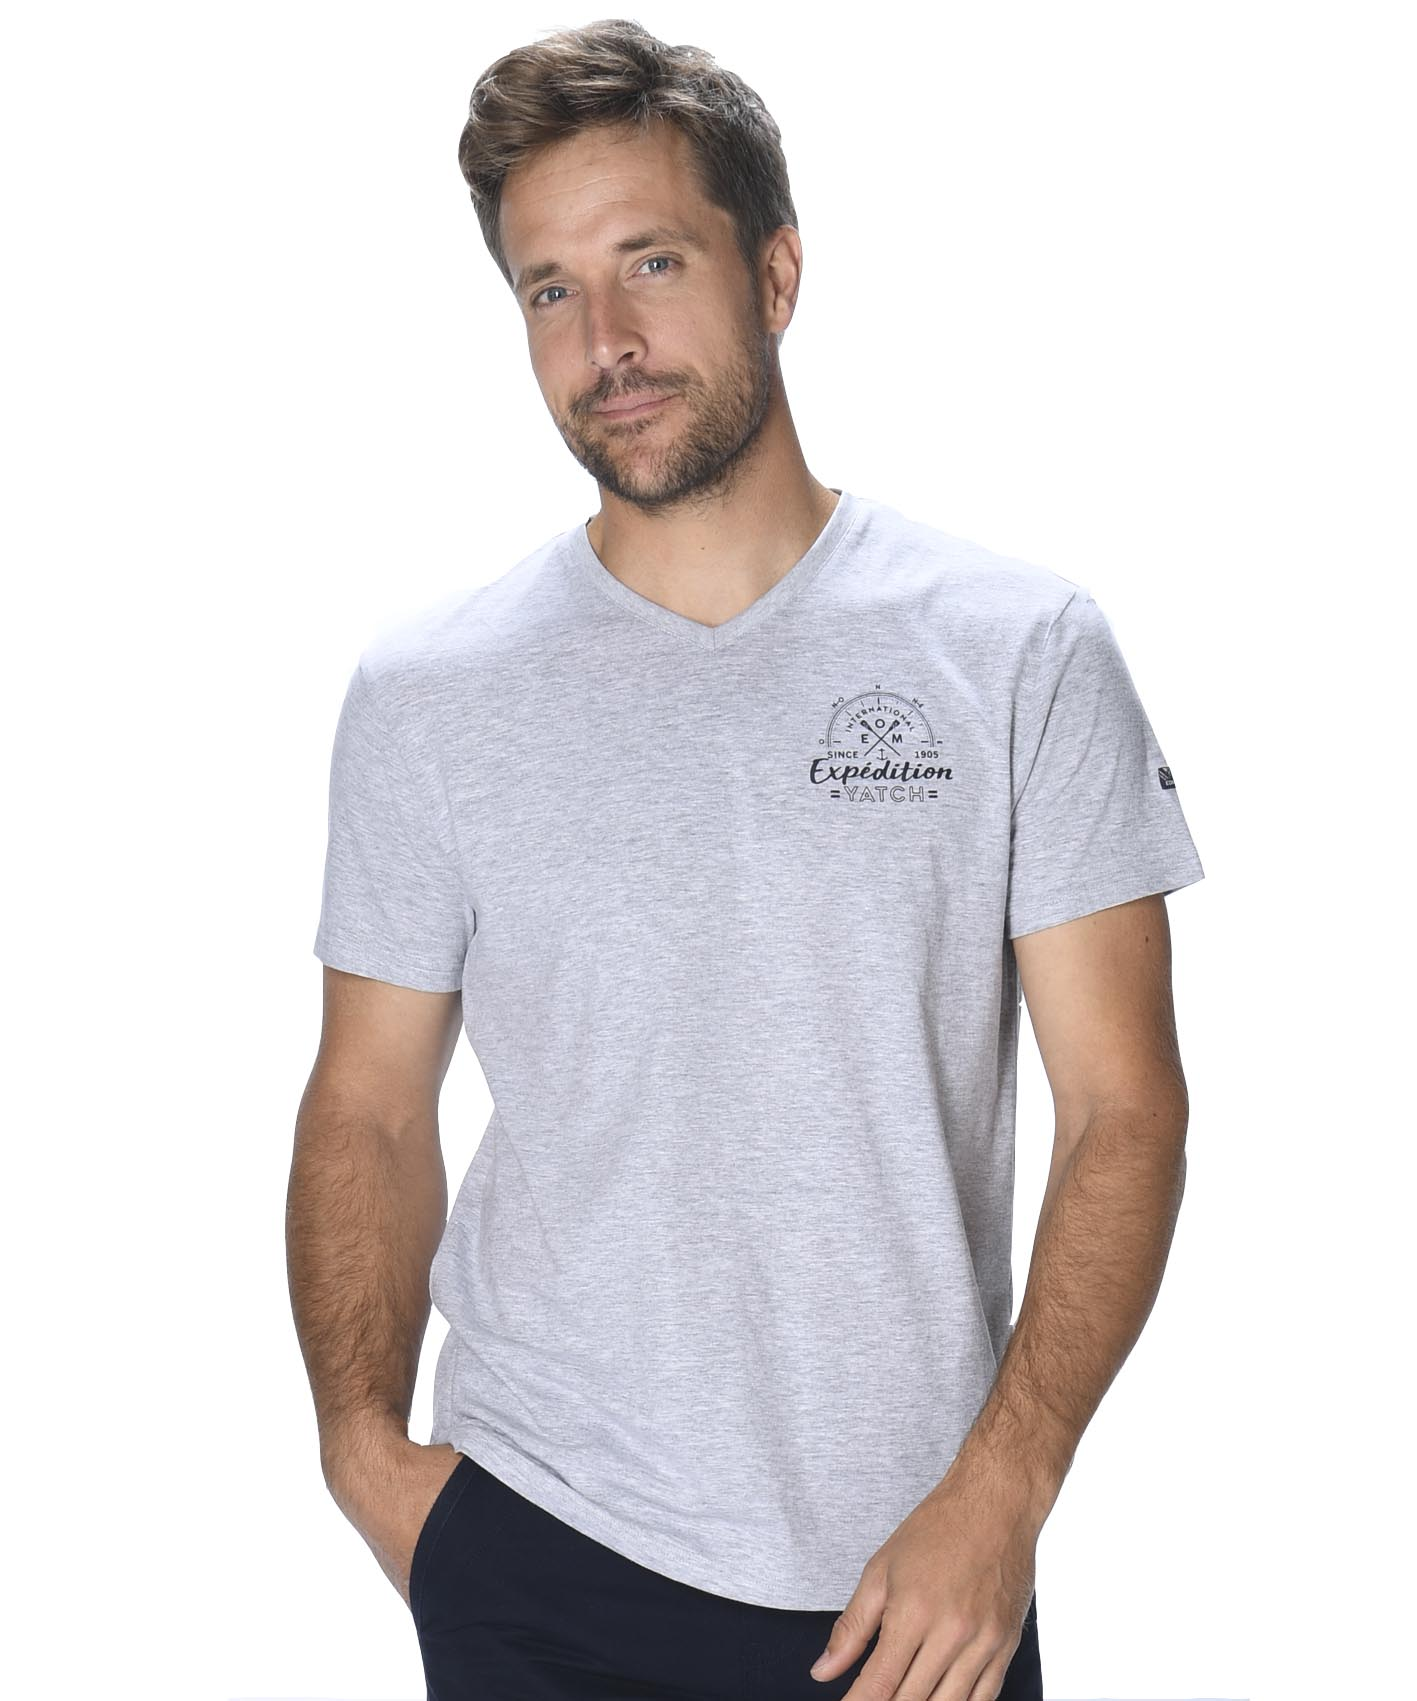 Tee-shirt manches courtes homme - Mode marine Homme